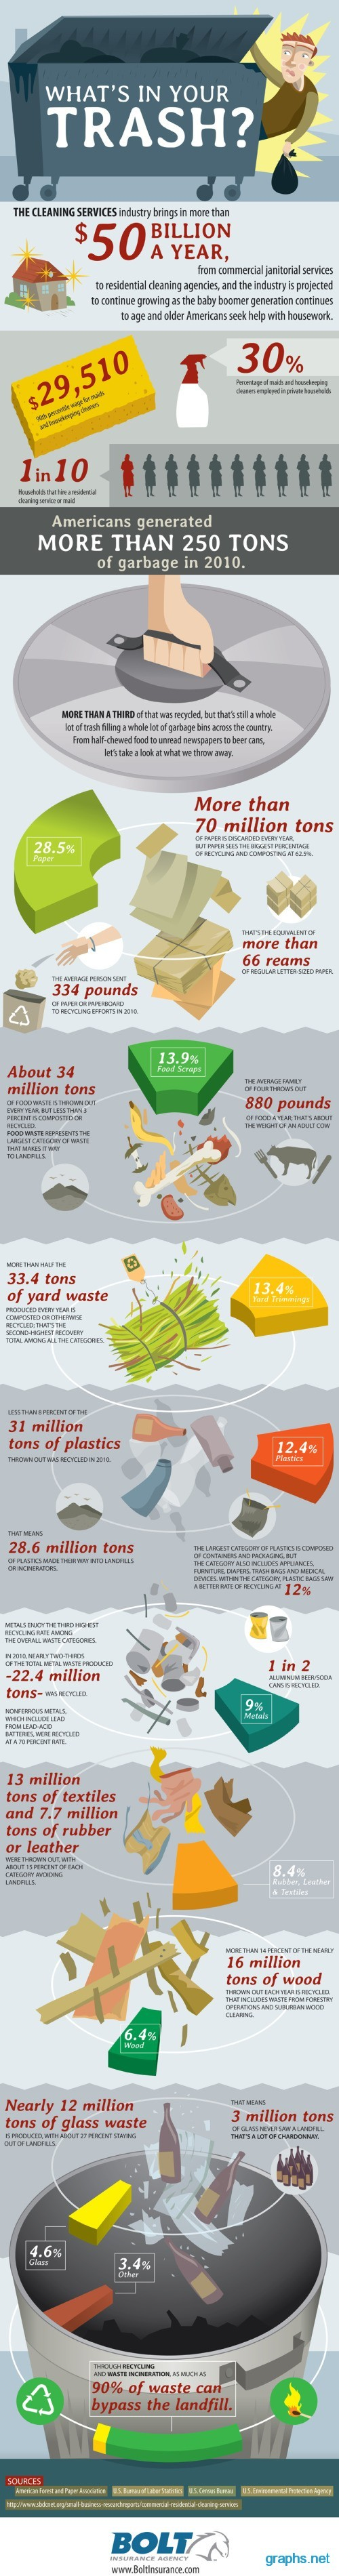 trash facts in america